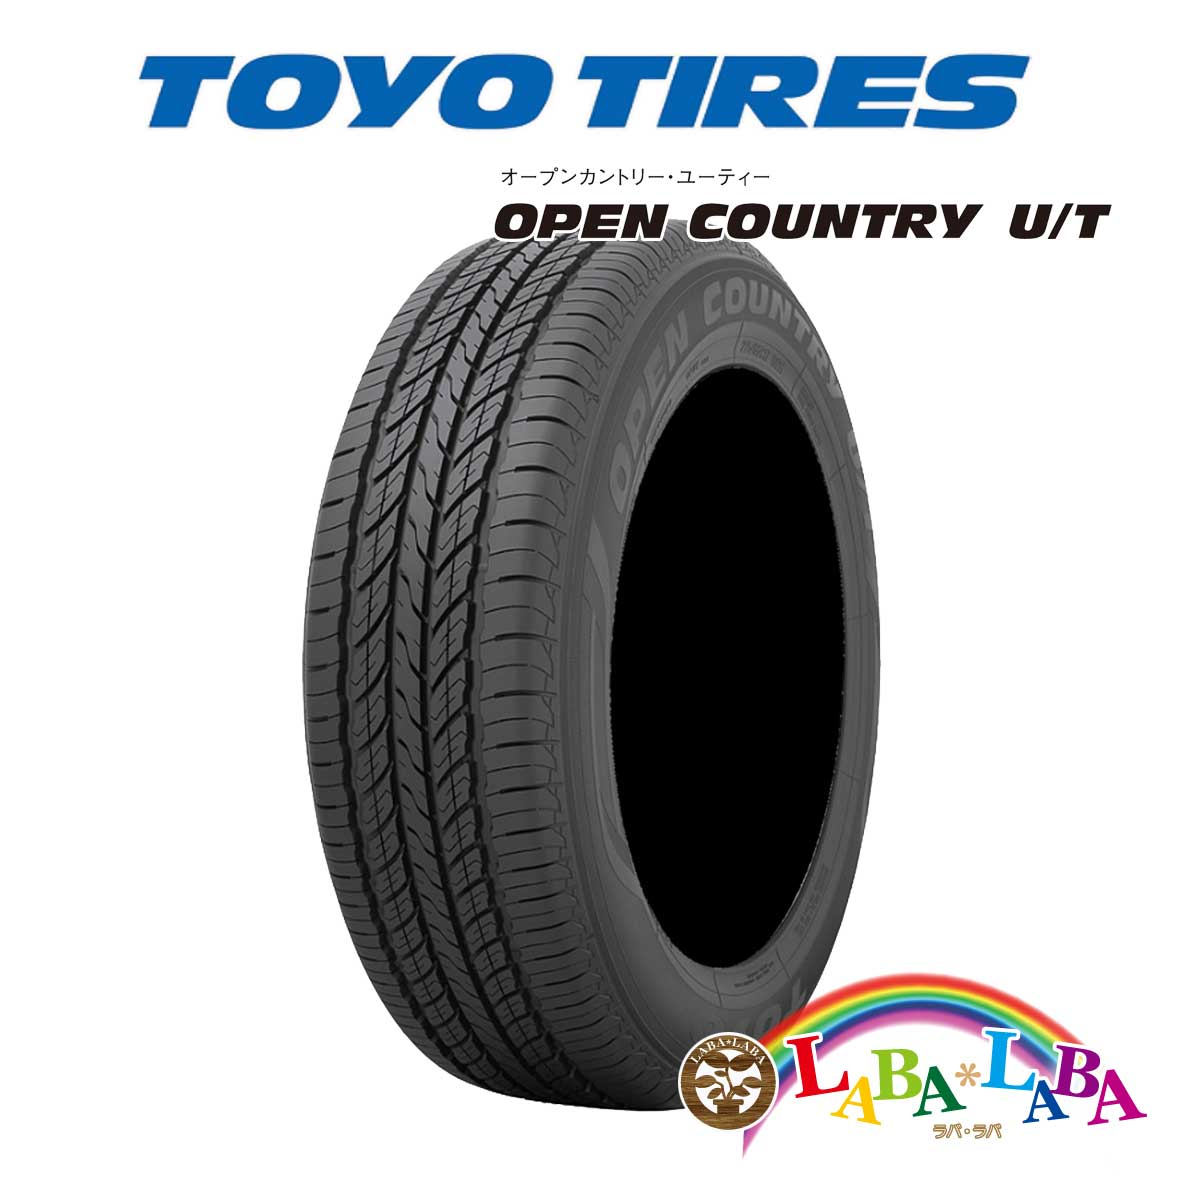 TOYO トーヨー OPEN COUNTRY オープンカントリー U/T (UT) 225/65R17 102H サマータイヤ SUV 4WD 2本セット